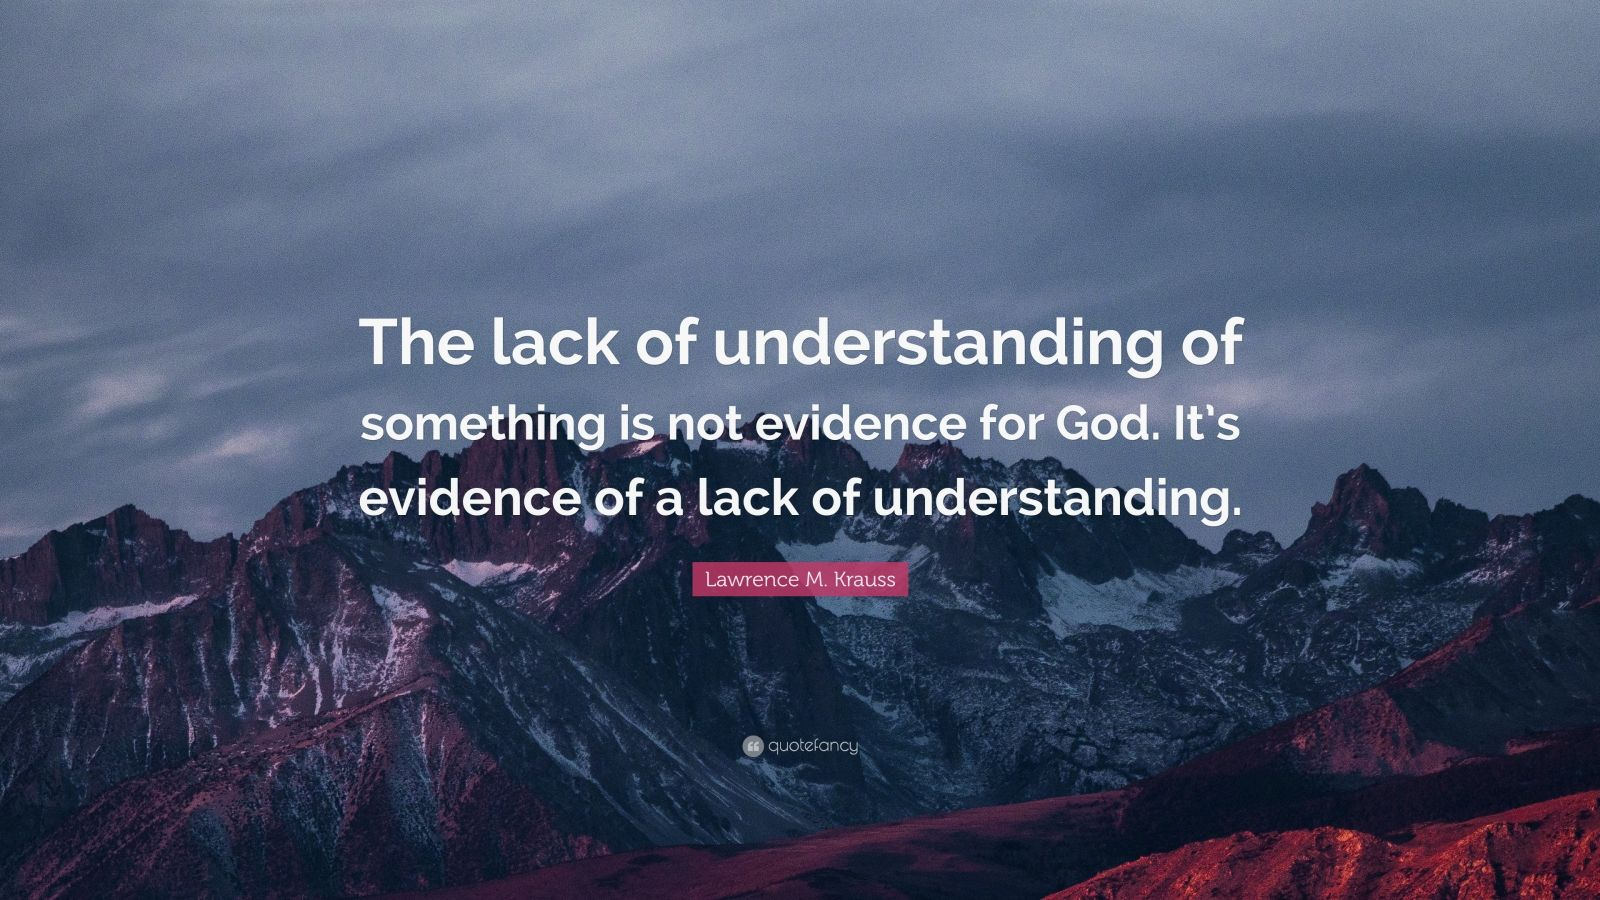 evidence of understanding Understanding evidence law and types of evidence introduction we will discuss the principles related to the use of evidence in a trial and the types of evidence that can be presented.